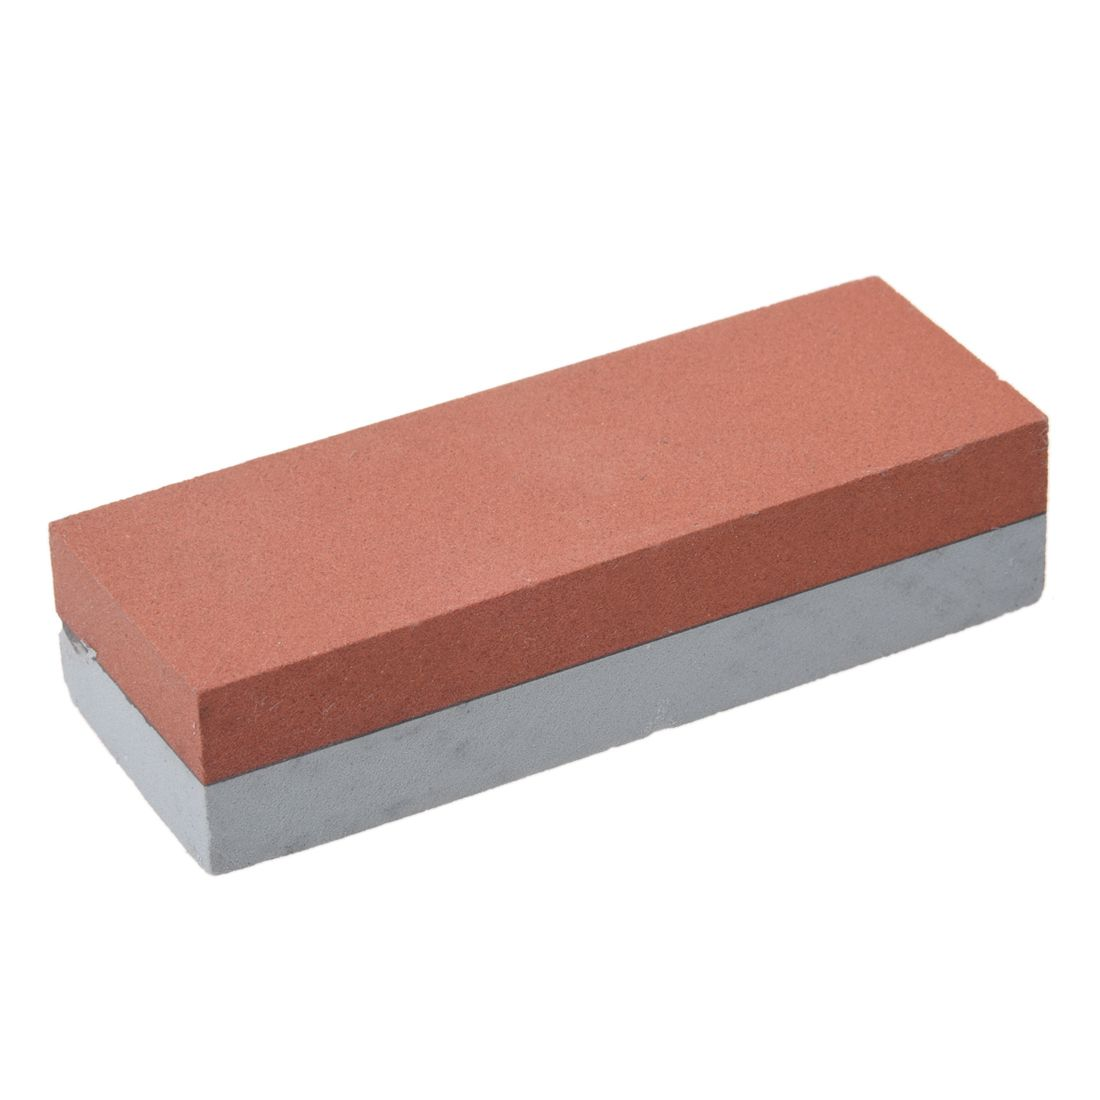 Combination Grit Double Sided Knife Honing Sharpener Sharpening Stone Whetstone Alumina Oxide Plus Carborundum Composite Stones